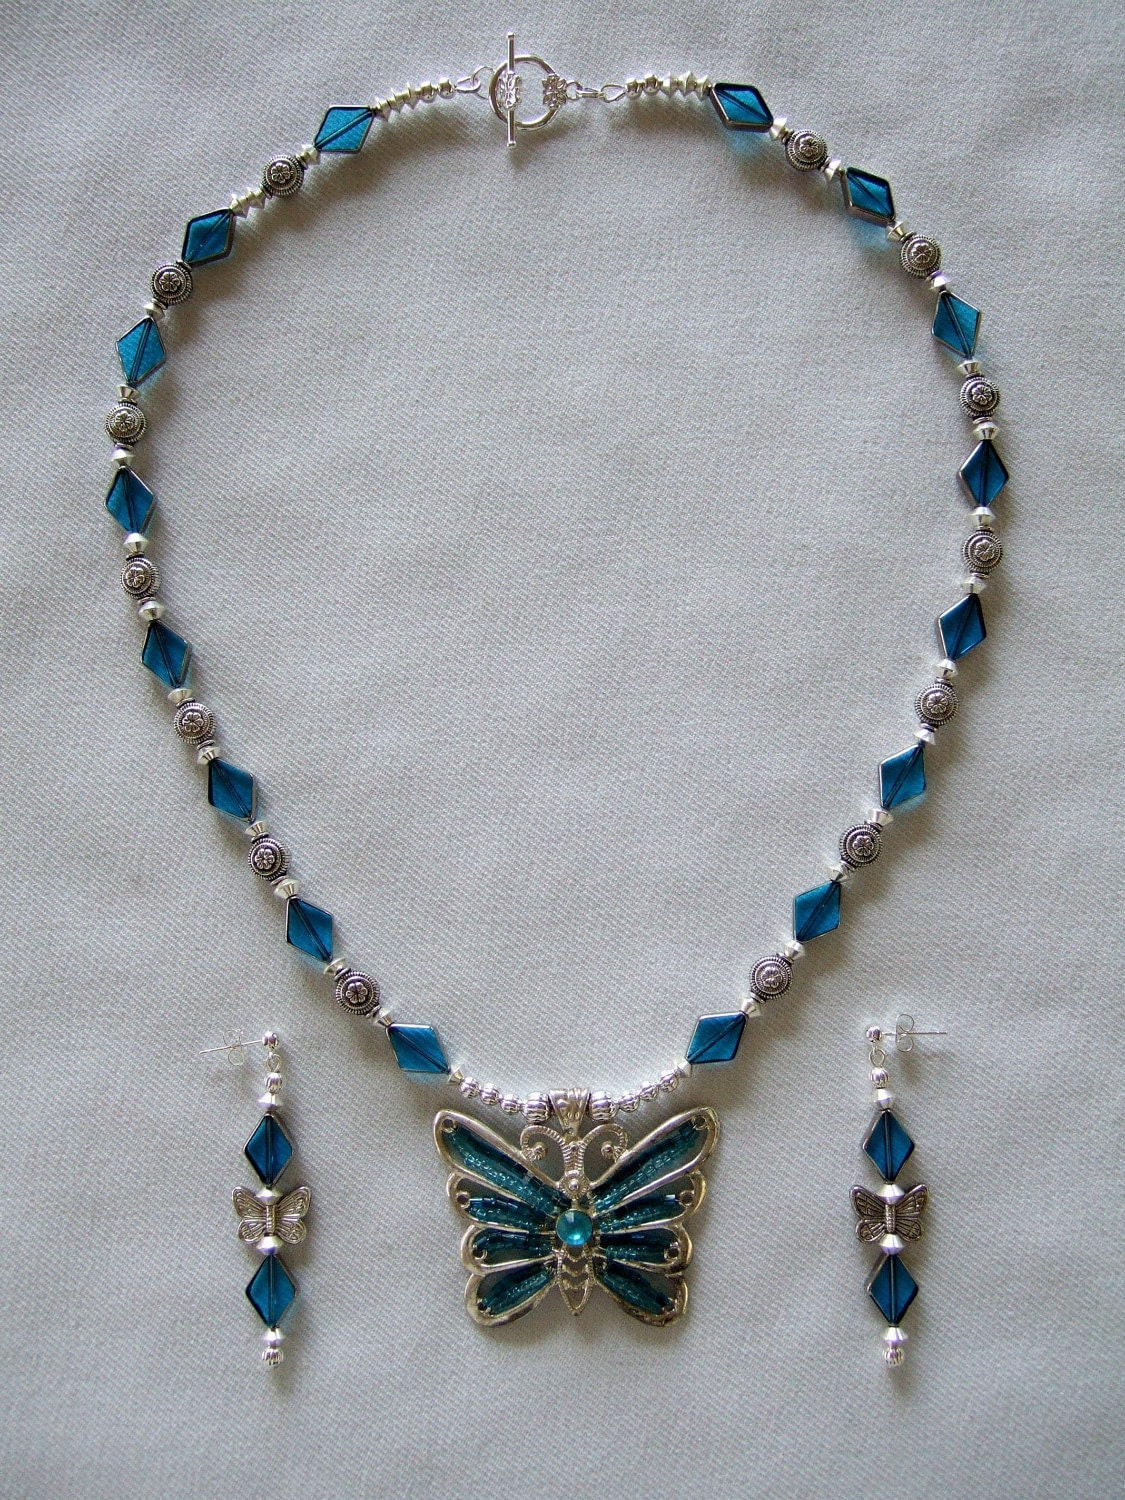 OOAK Fashion Beaded Necklace Vintage Butterfly by JewelrybyIshi